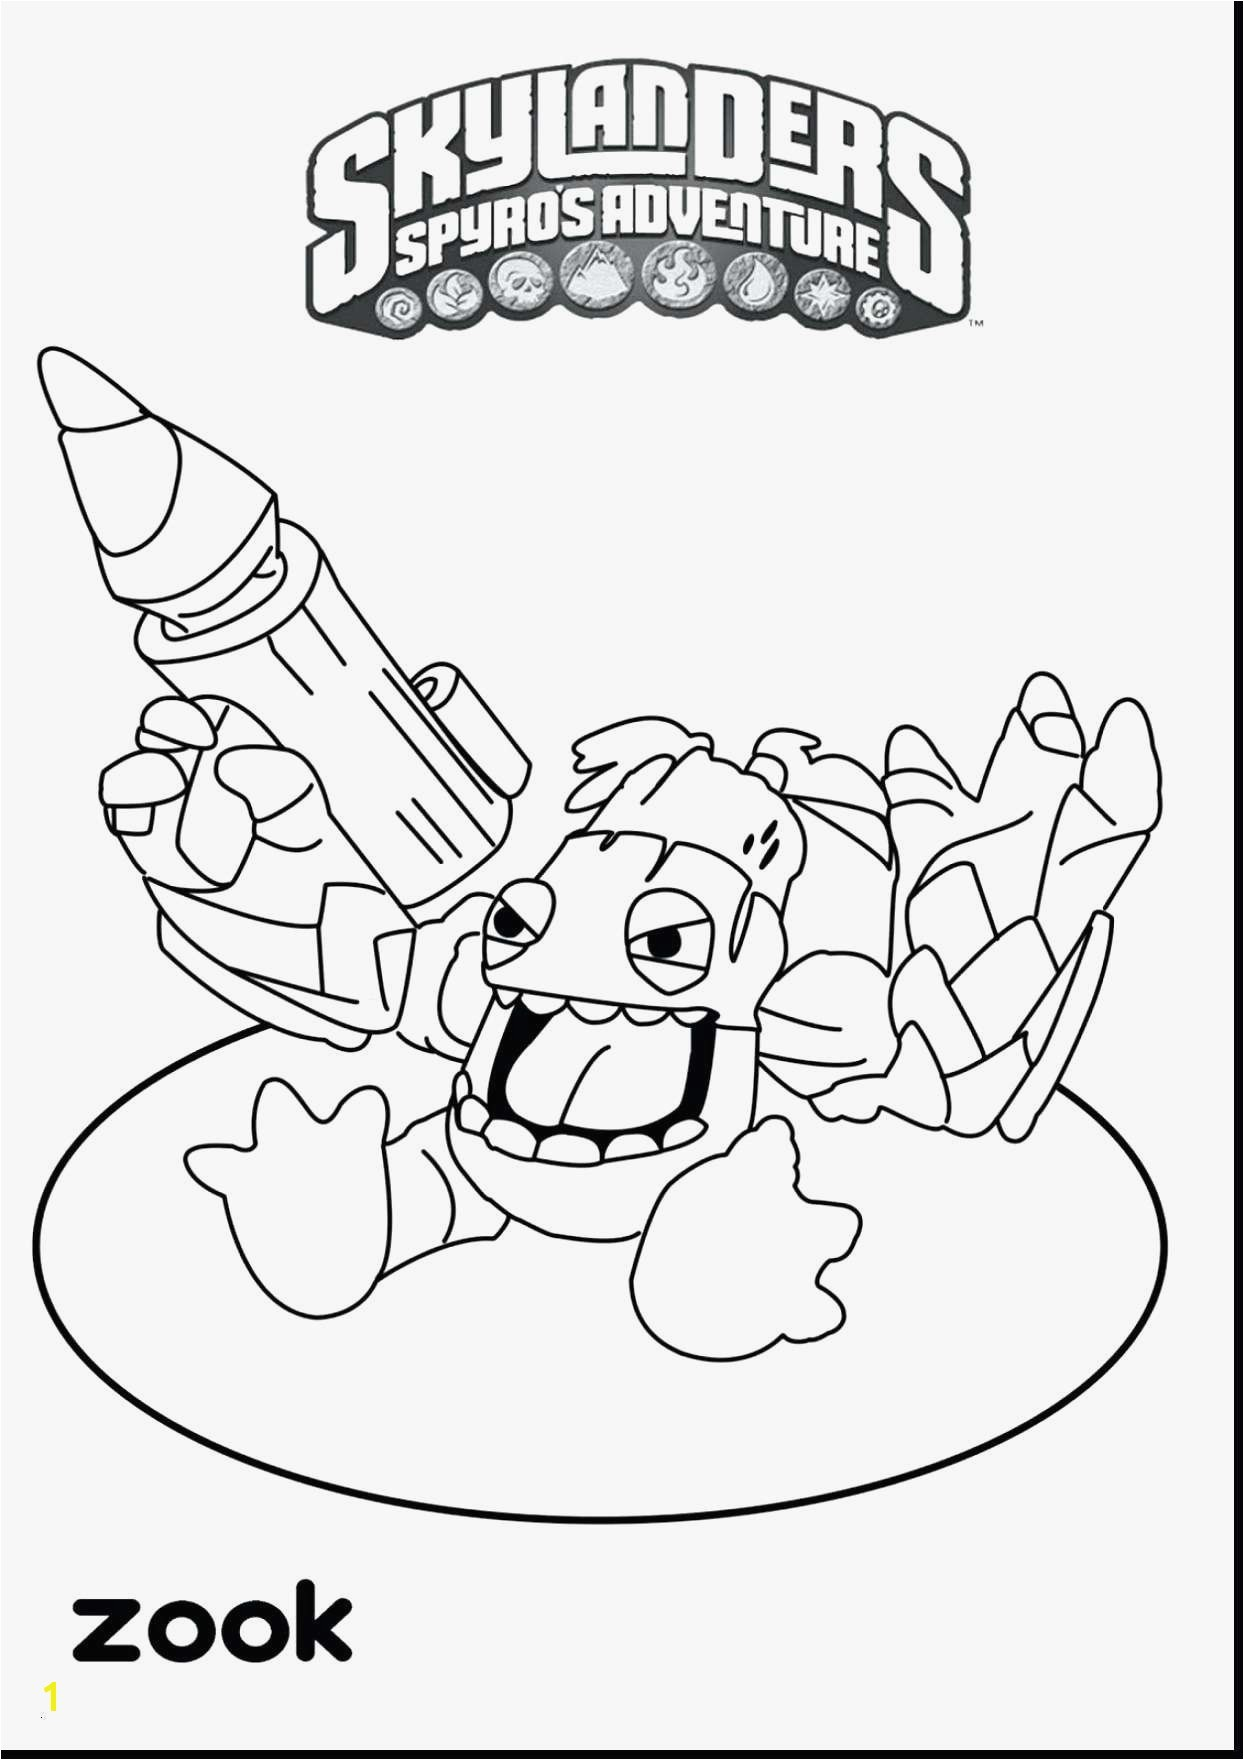 Coloring Pages Kids Cool Coloring Page Inspirational Witch Coloring Pages New Crayola Pages 0d Coloring 38 Bible Christmas Coloring Pages Free